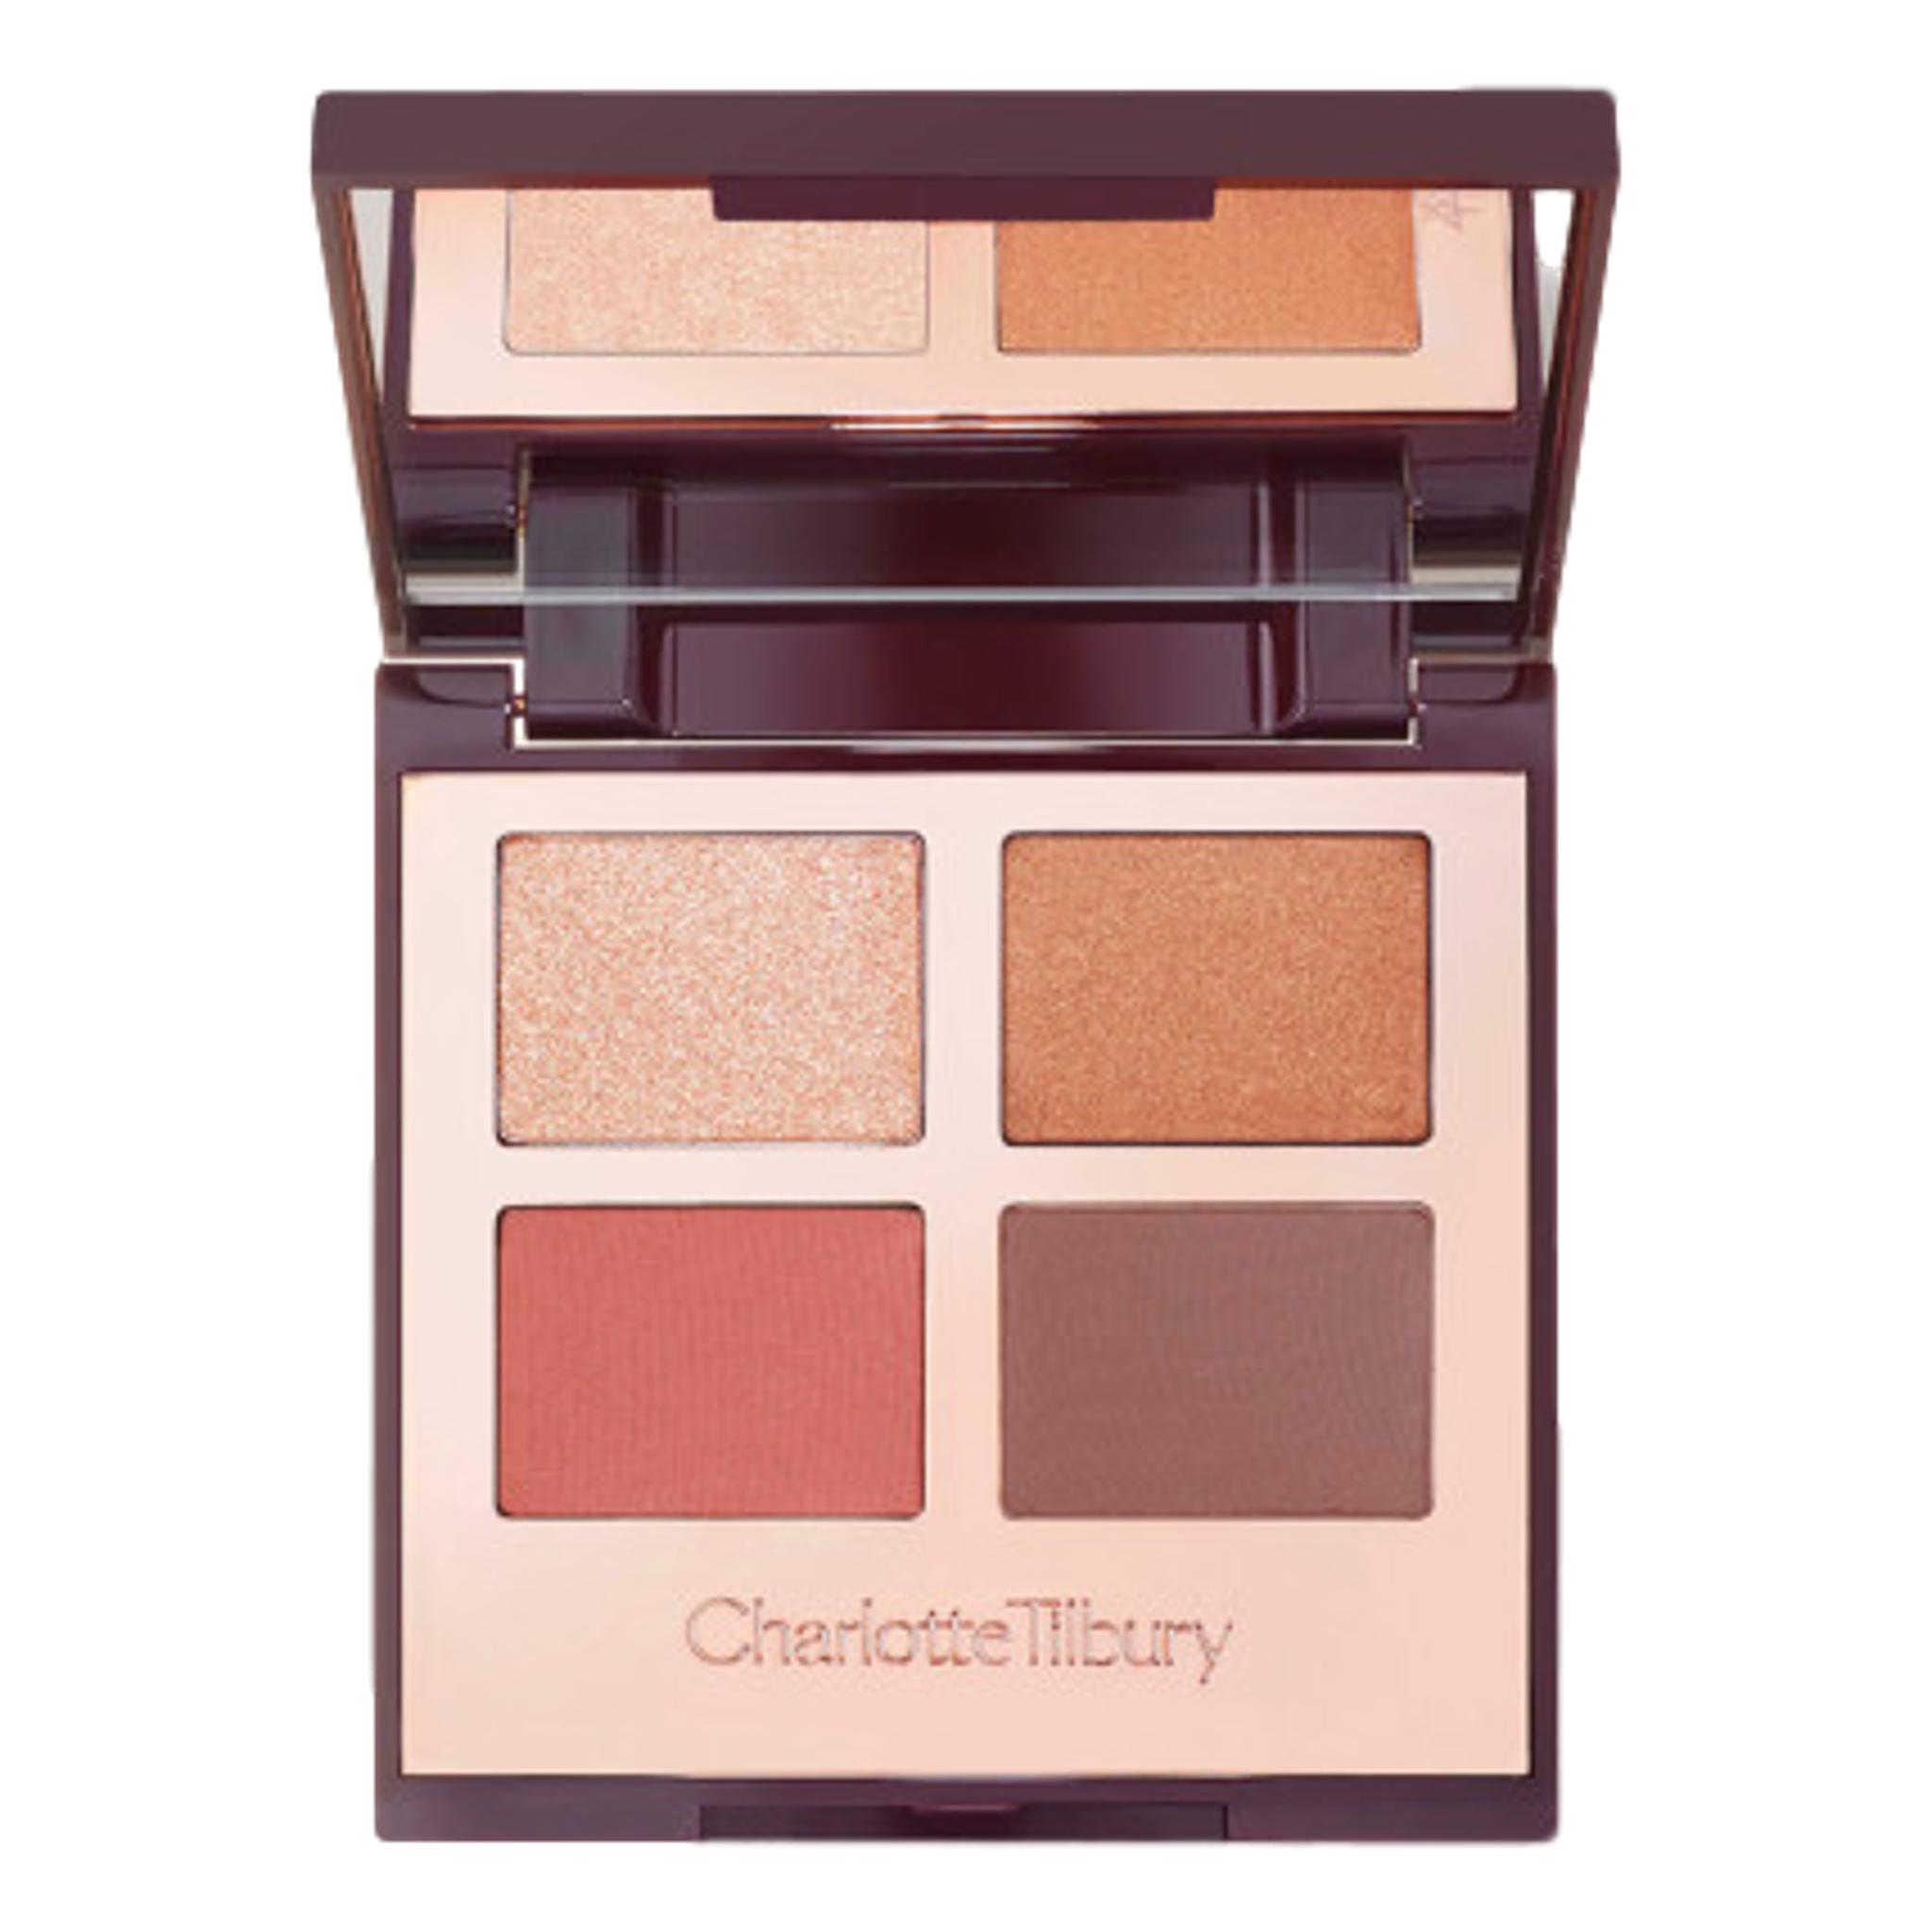 Charlotte Tilbury Luxury Eyeshadow Palette - Bigger Brighter Eyes Transform Eyes, eyeshadow palette, London Loves Beauty